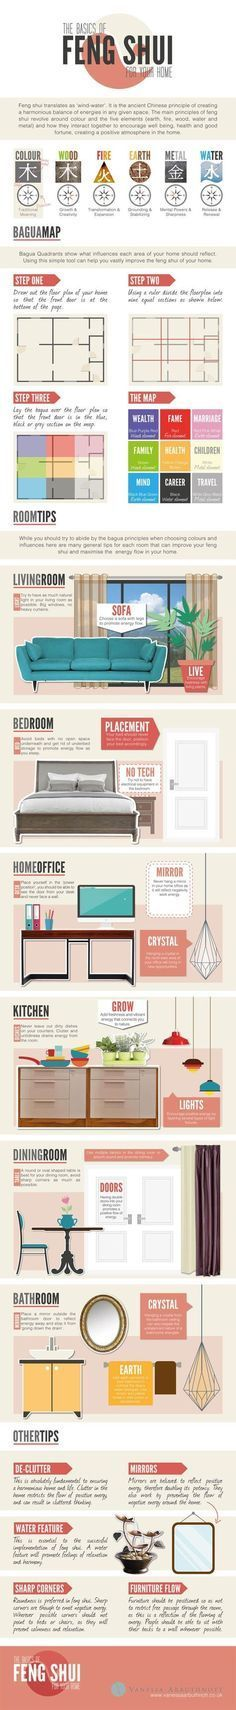 Best 25+ Home feng shui ideas on Pinterest Feng shui your - feng shui schlafzimmer 8 tipps